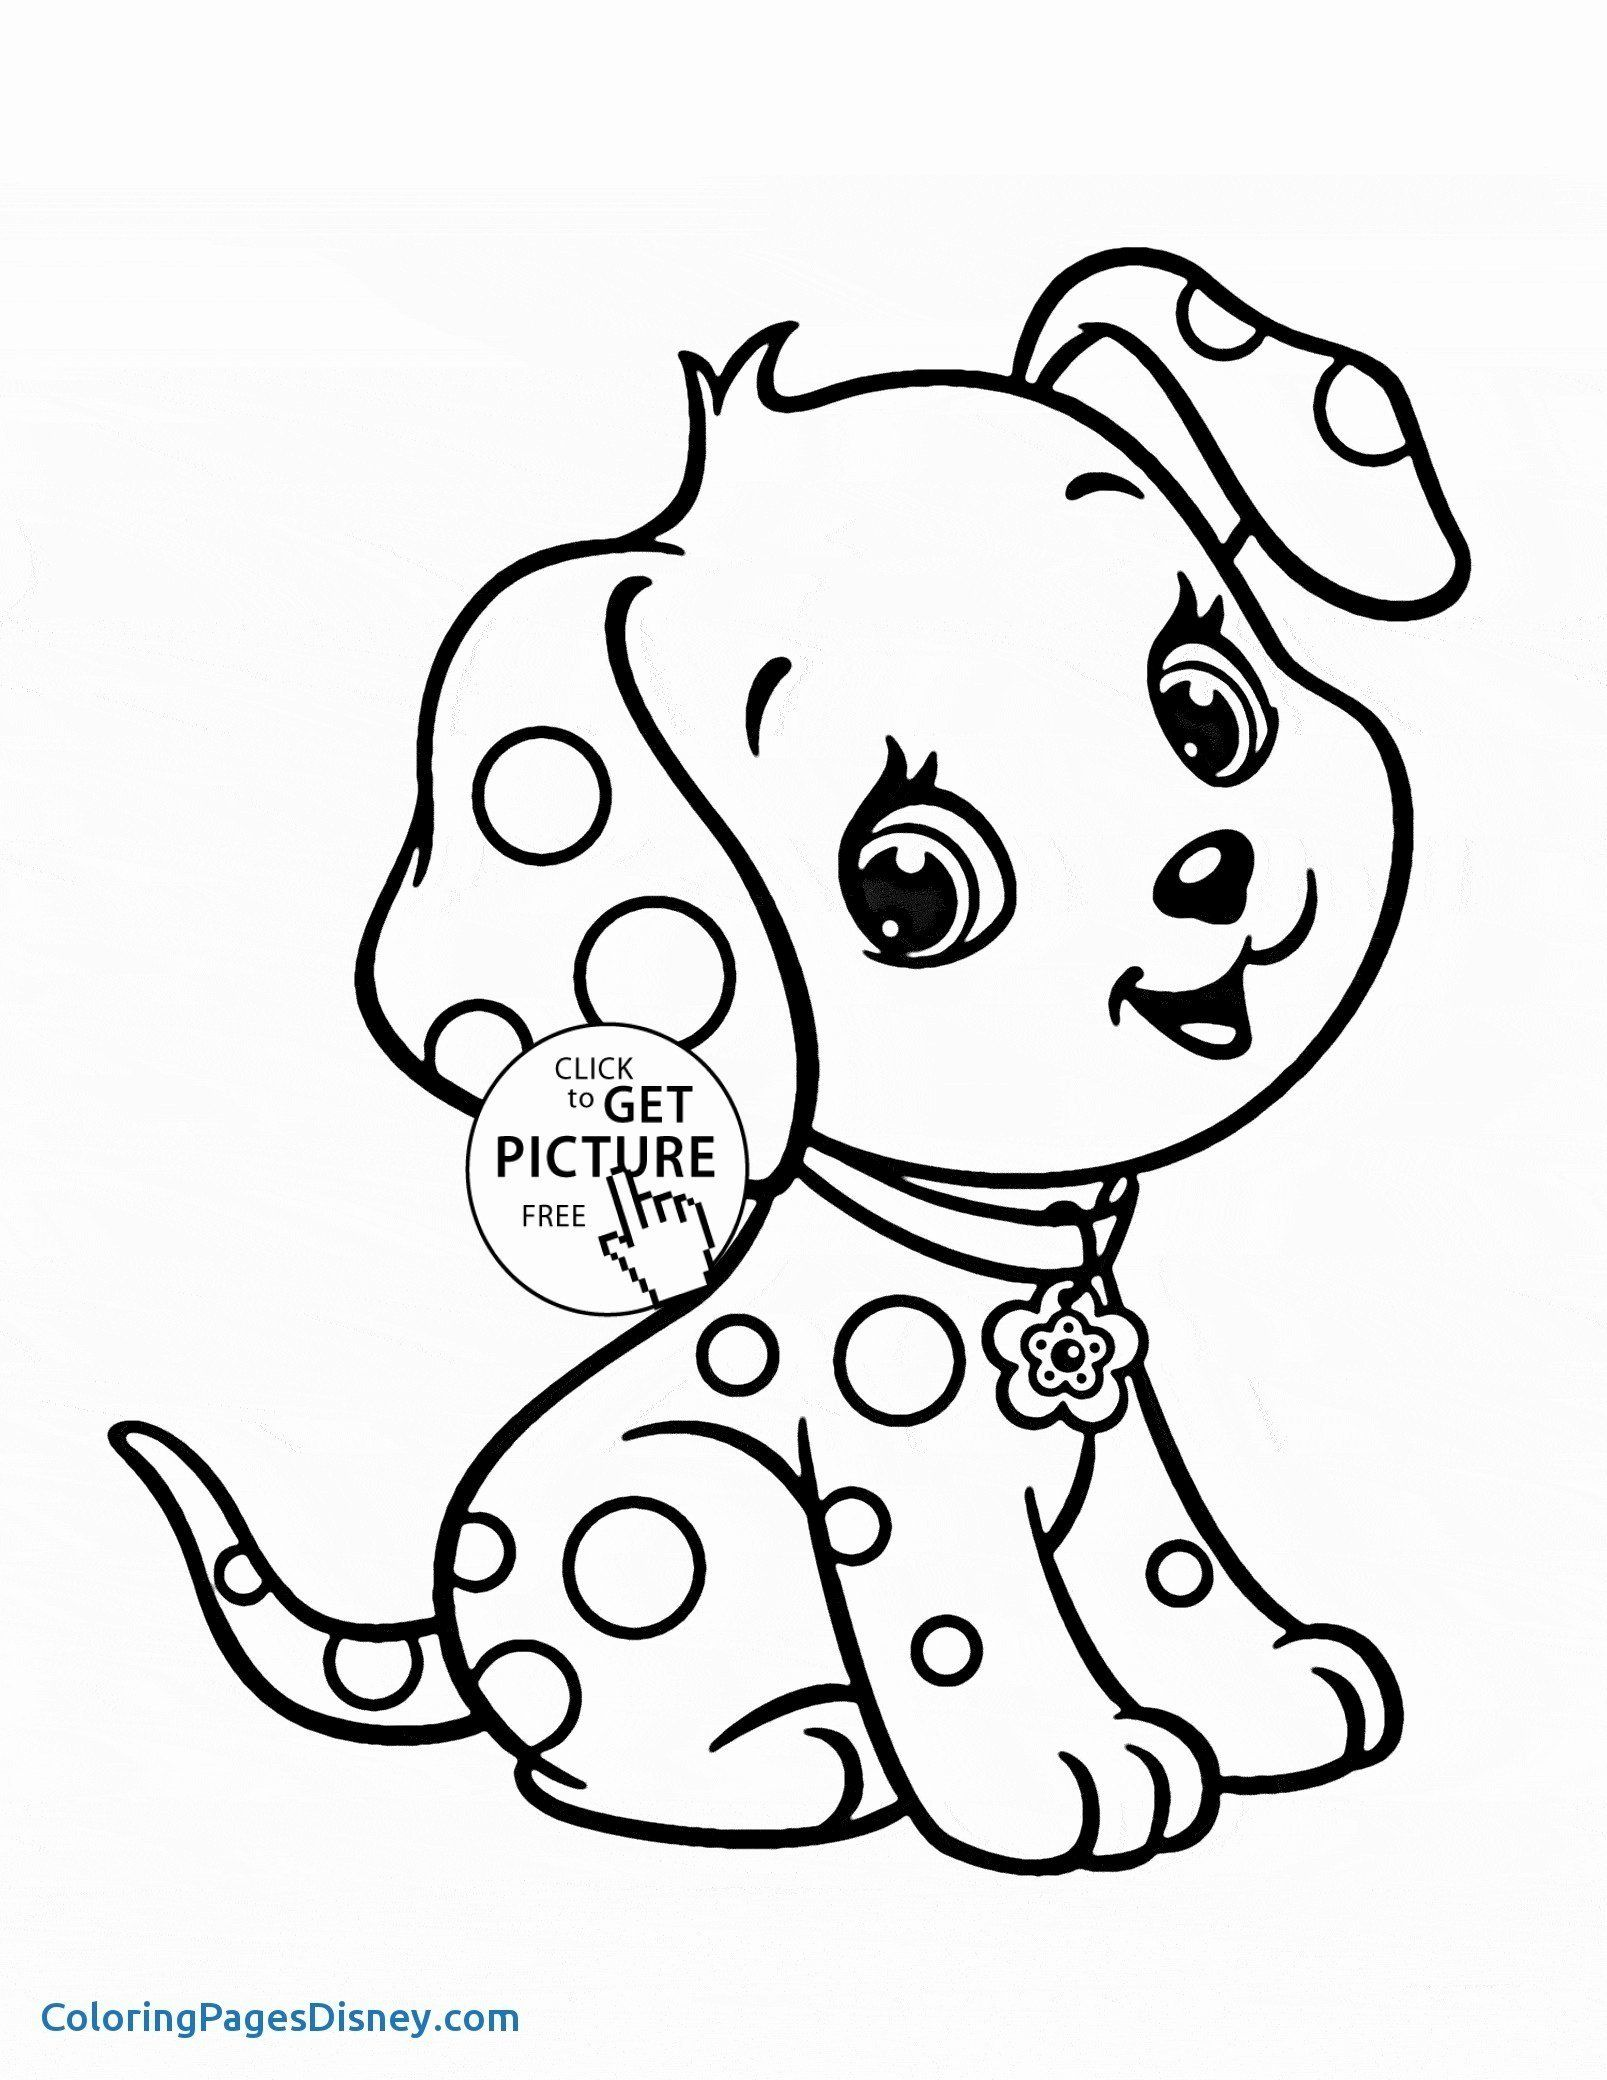 Thanksgiving Coloring Sheets For Toddlers Lovely Coloring Pages